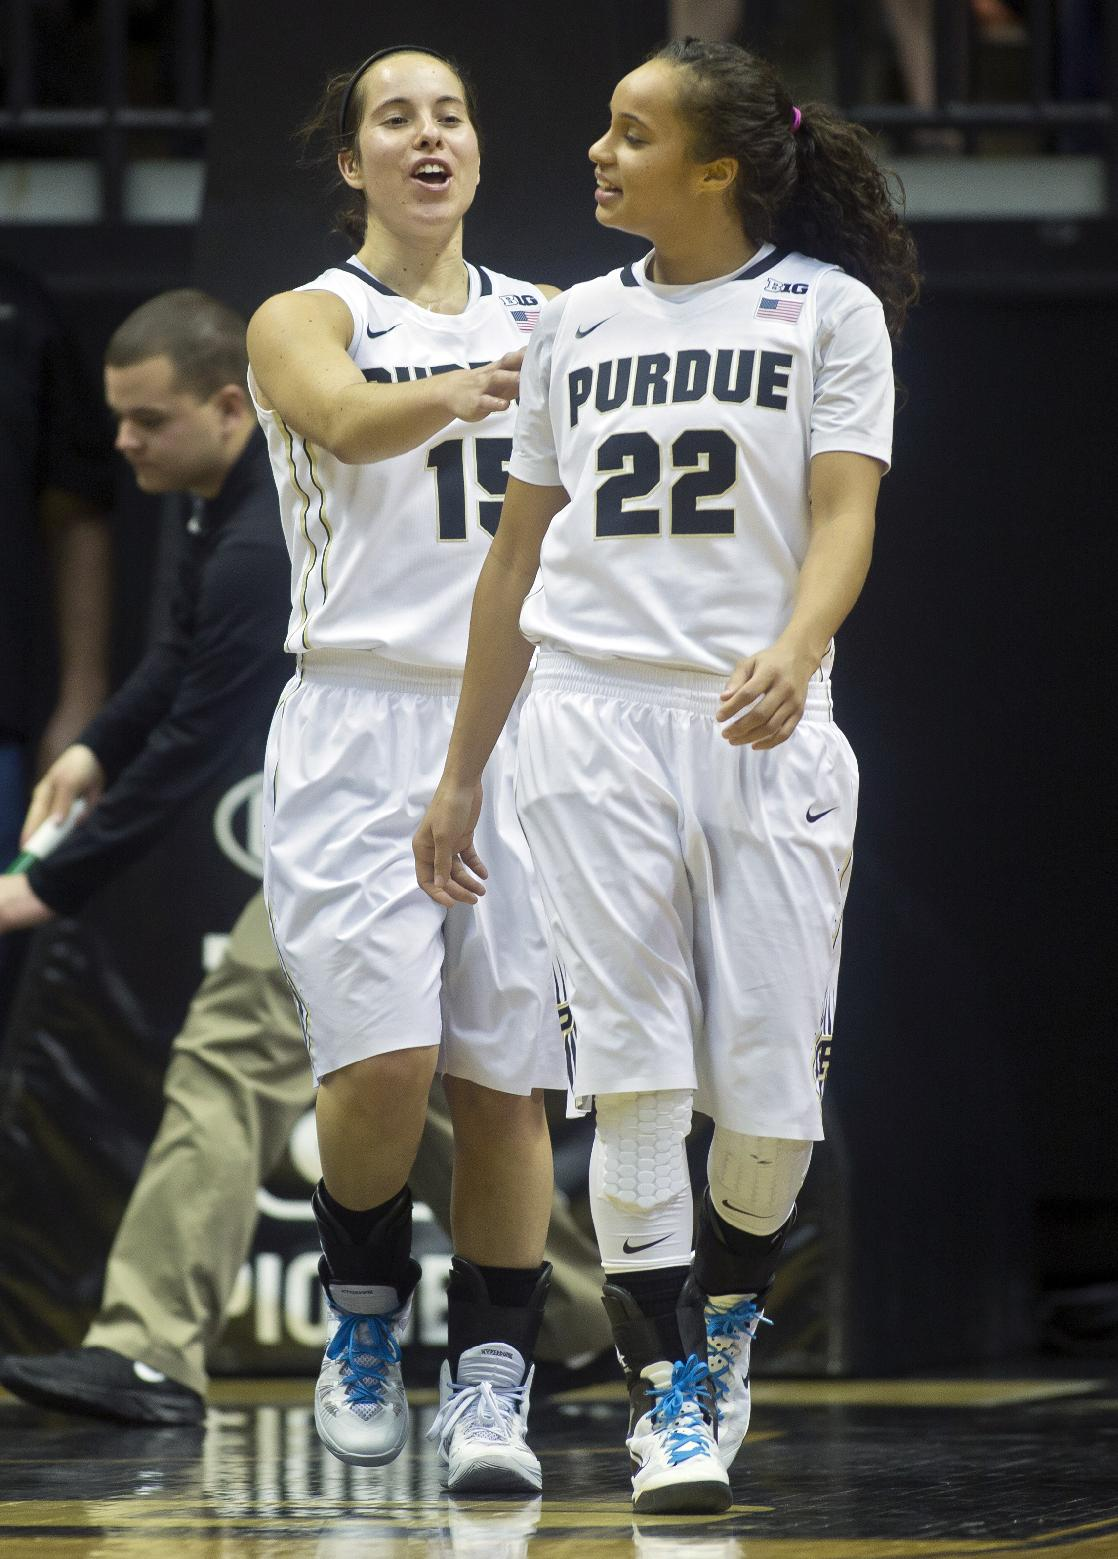 Purdue's Courtney Moses (15) congratulates teammate KK Houser after Houser took a charging foul during an NCAA college basketball game against Indiana, Friday, Jan. 17, 2014, in West Lafayette, Ind. Purdue won 86-53